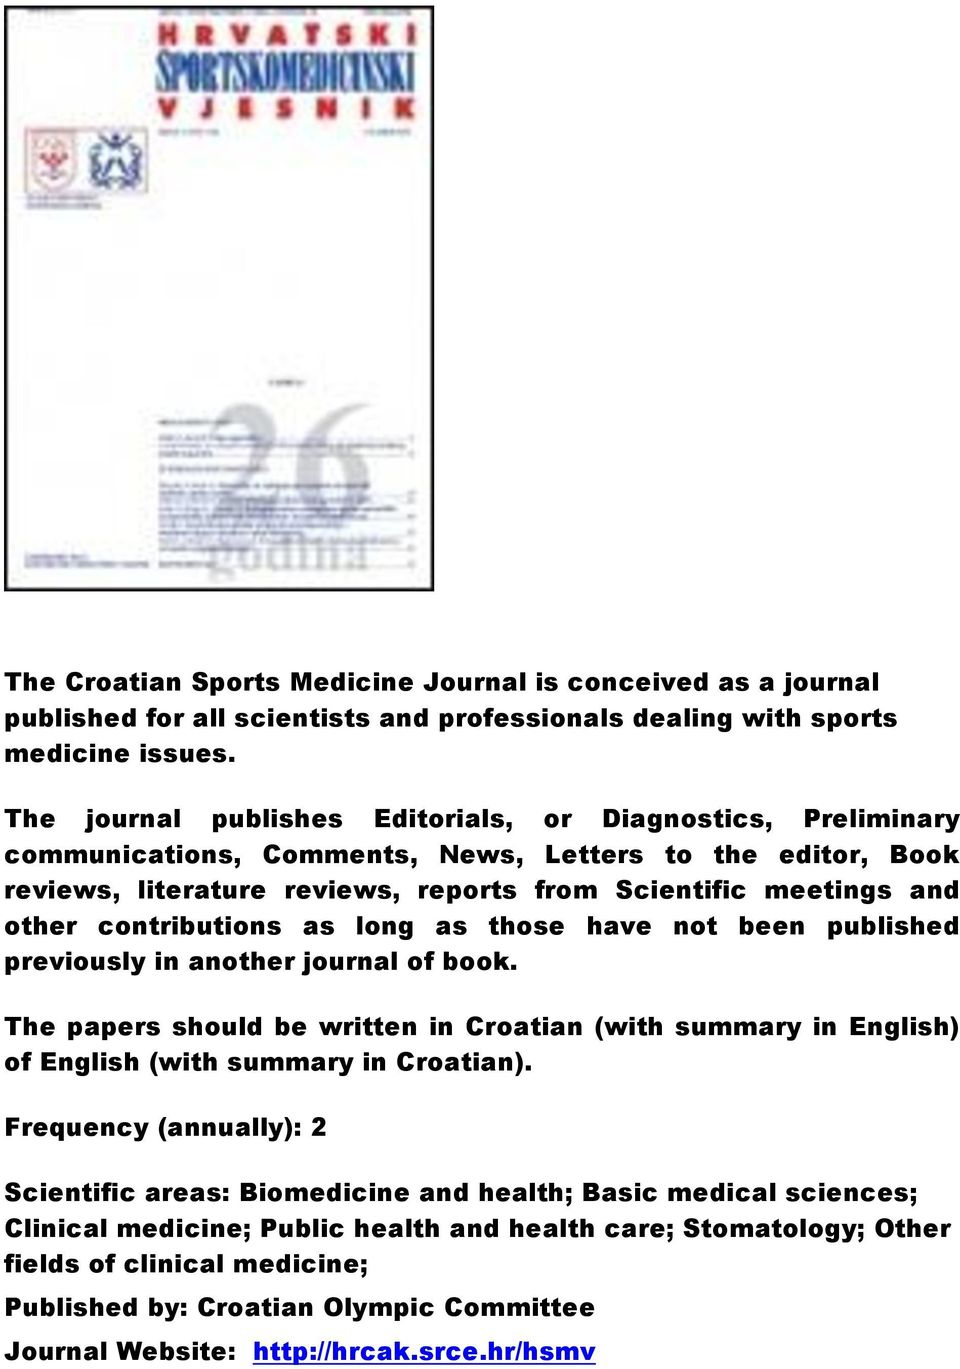 contributions as long as those have not been published previously in another journal of book. The papers should be written in Croatian (with summary in English) of English (with summary in Croatian).